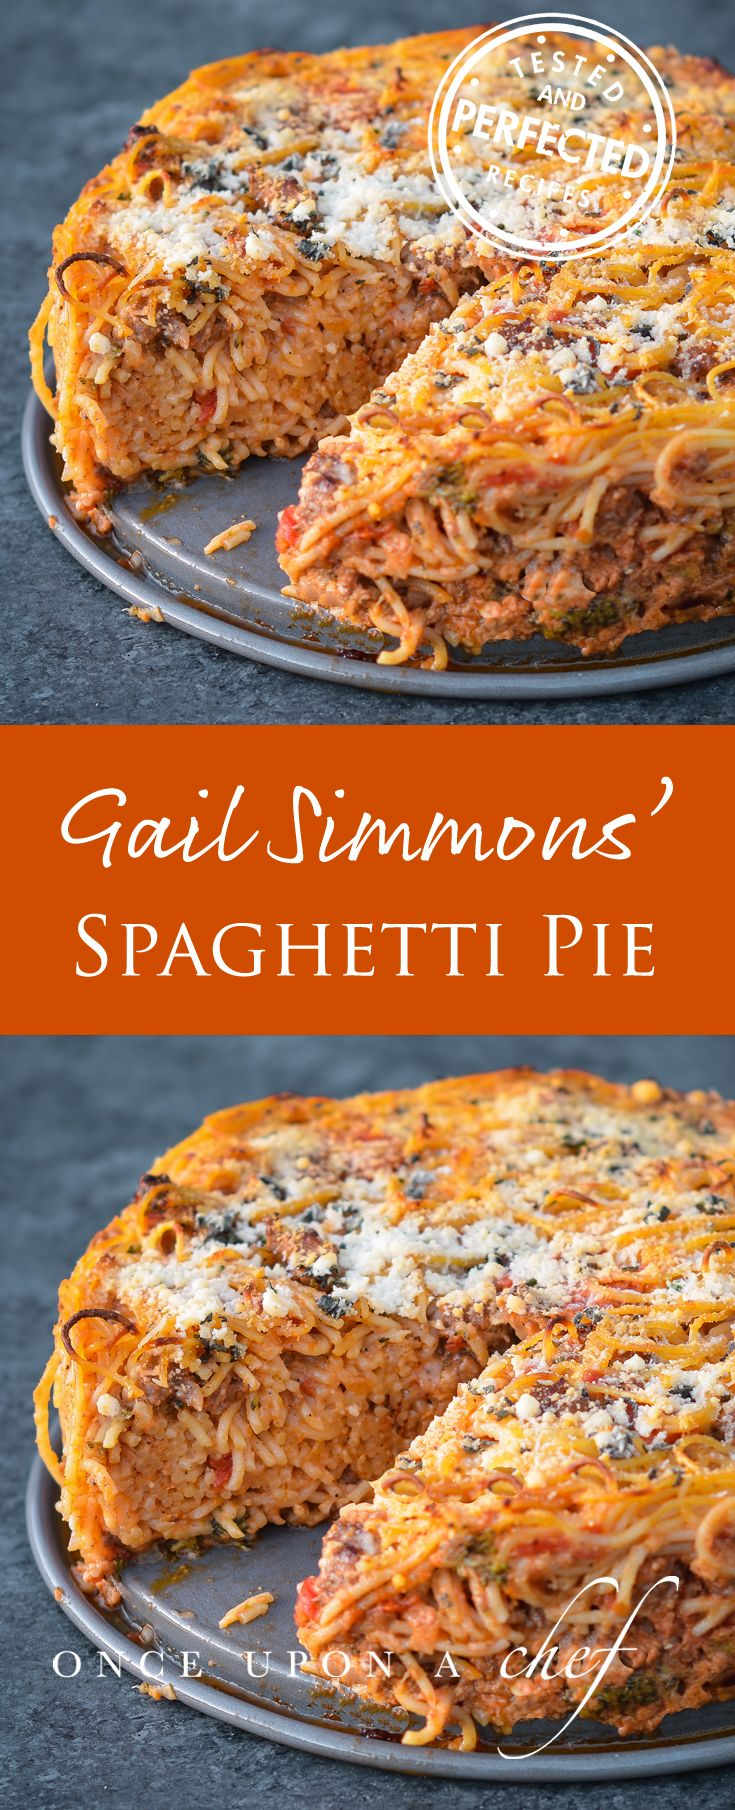 Gail Simmons' Epic Spaghetti Pie